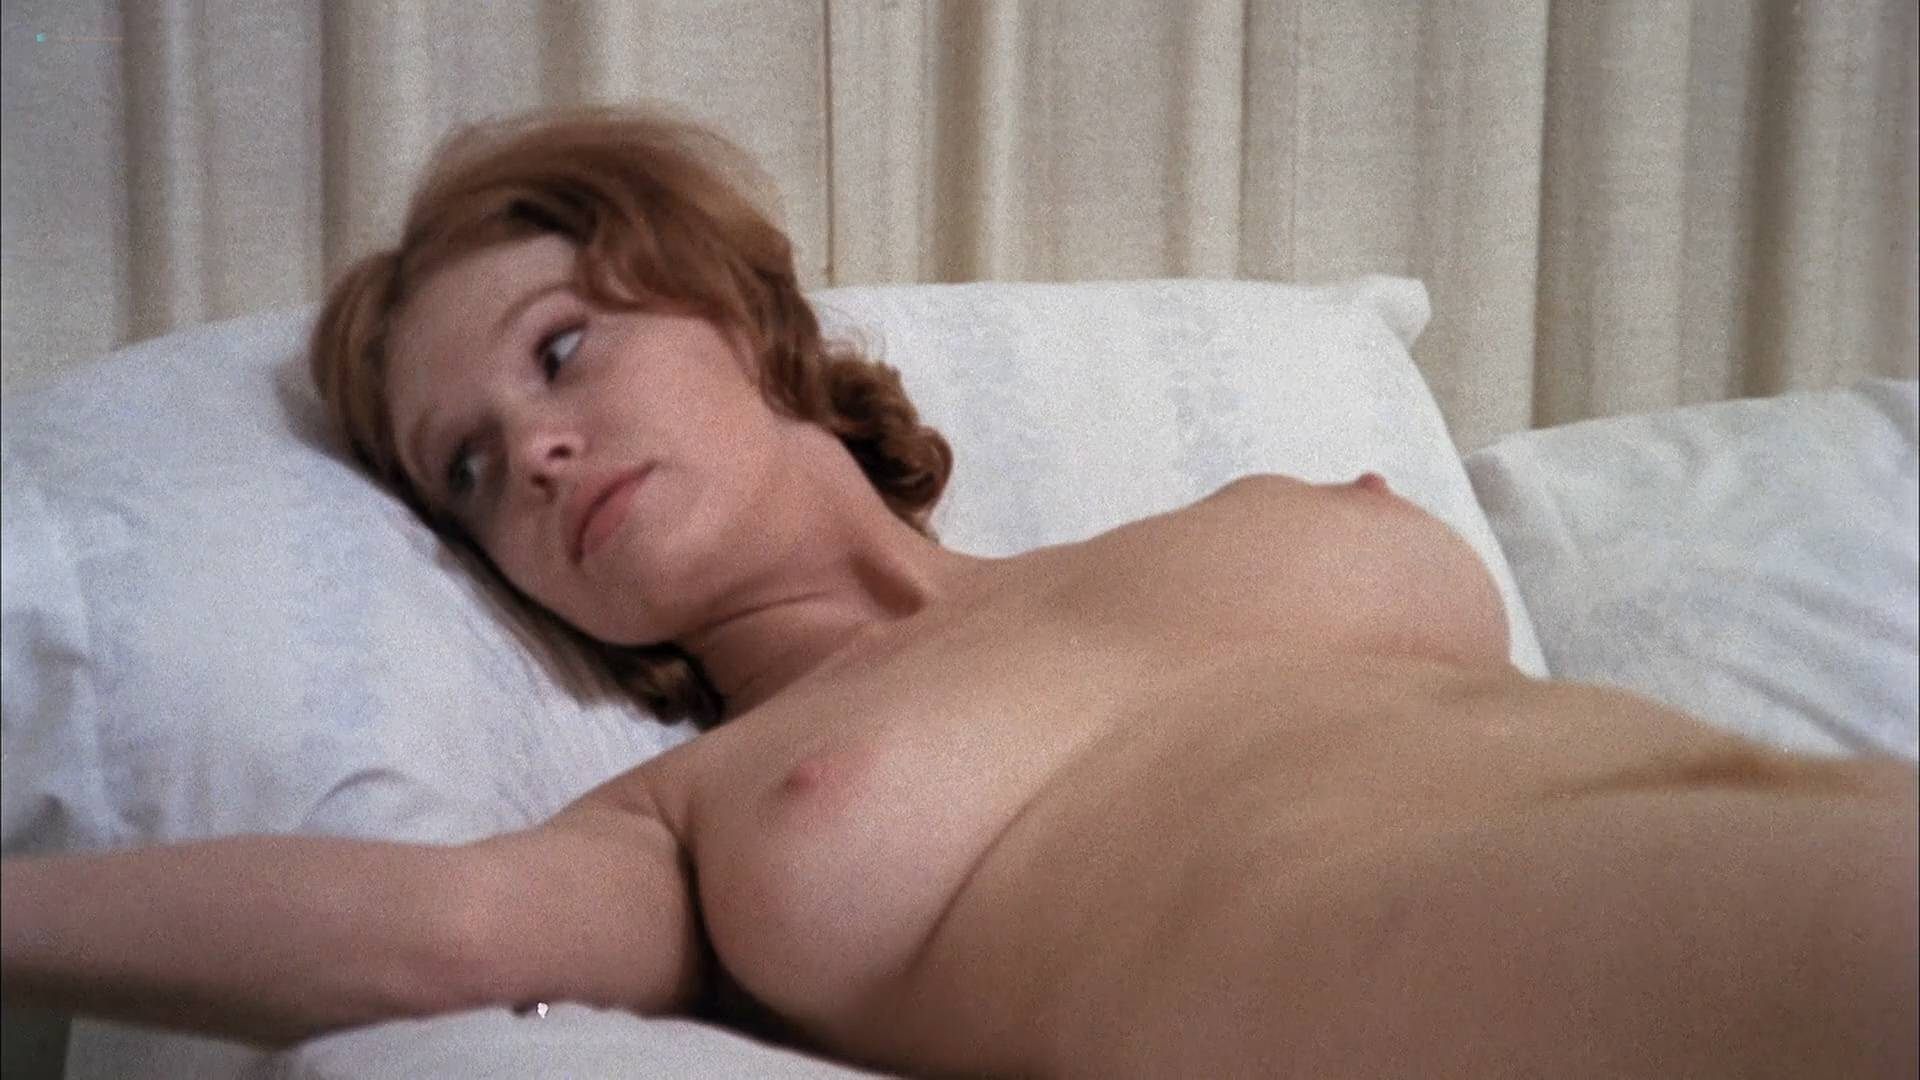 Sharon Kelly nude full frontal Angela Carnon nude bush and butt - Alice Goodbody (1974) HD 1080p BluRay (11)